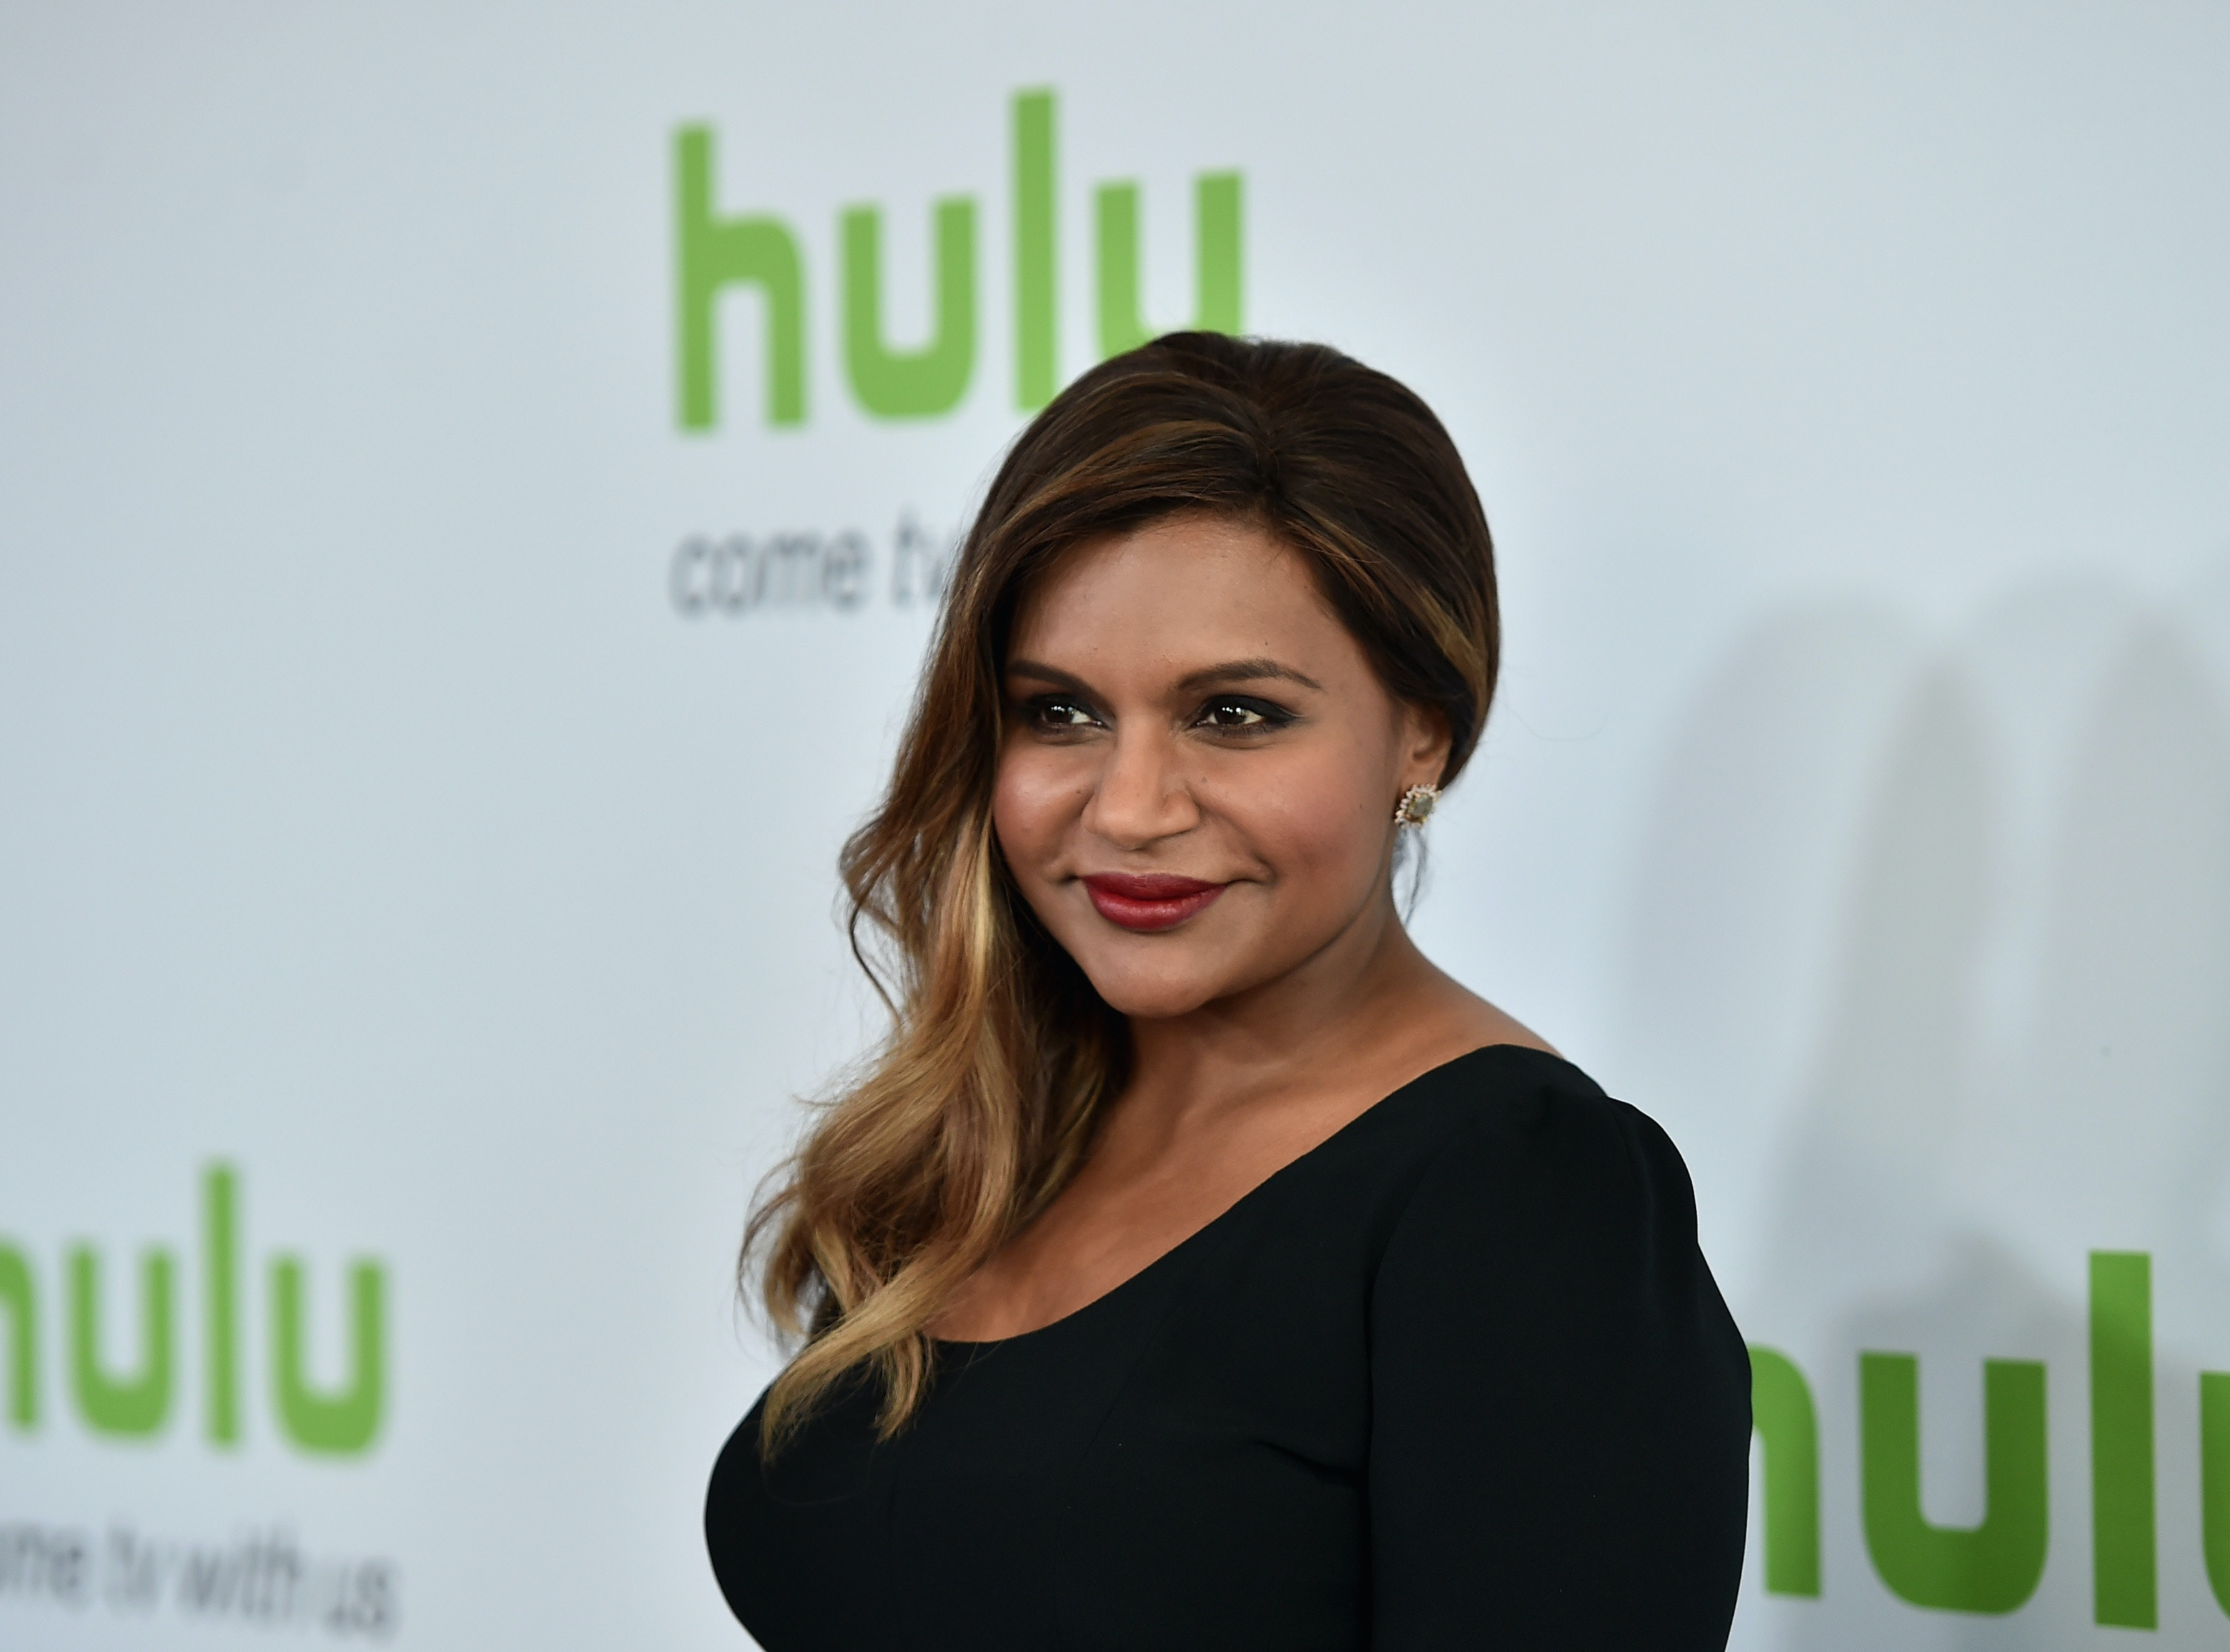 The internet is now shipping Mindy Kaling and Cory Booker